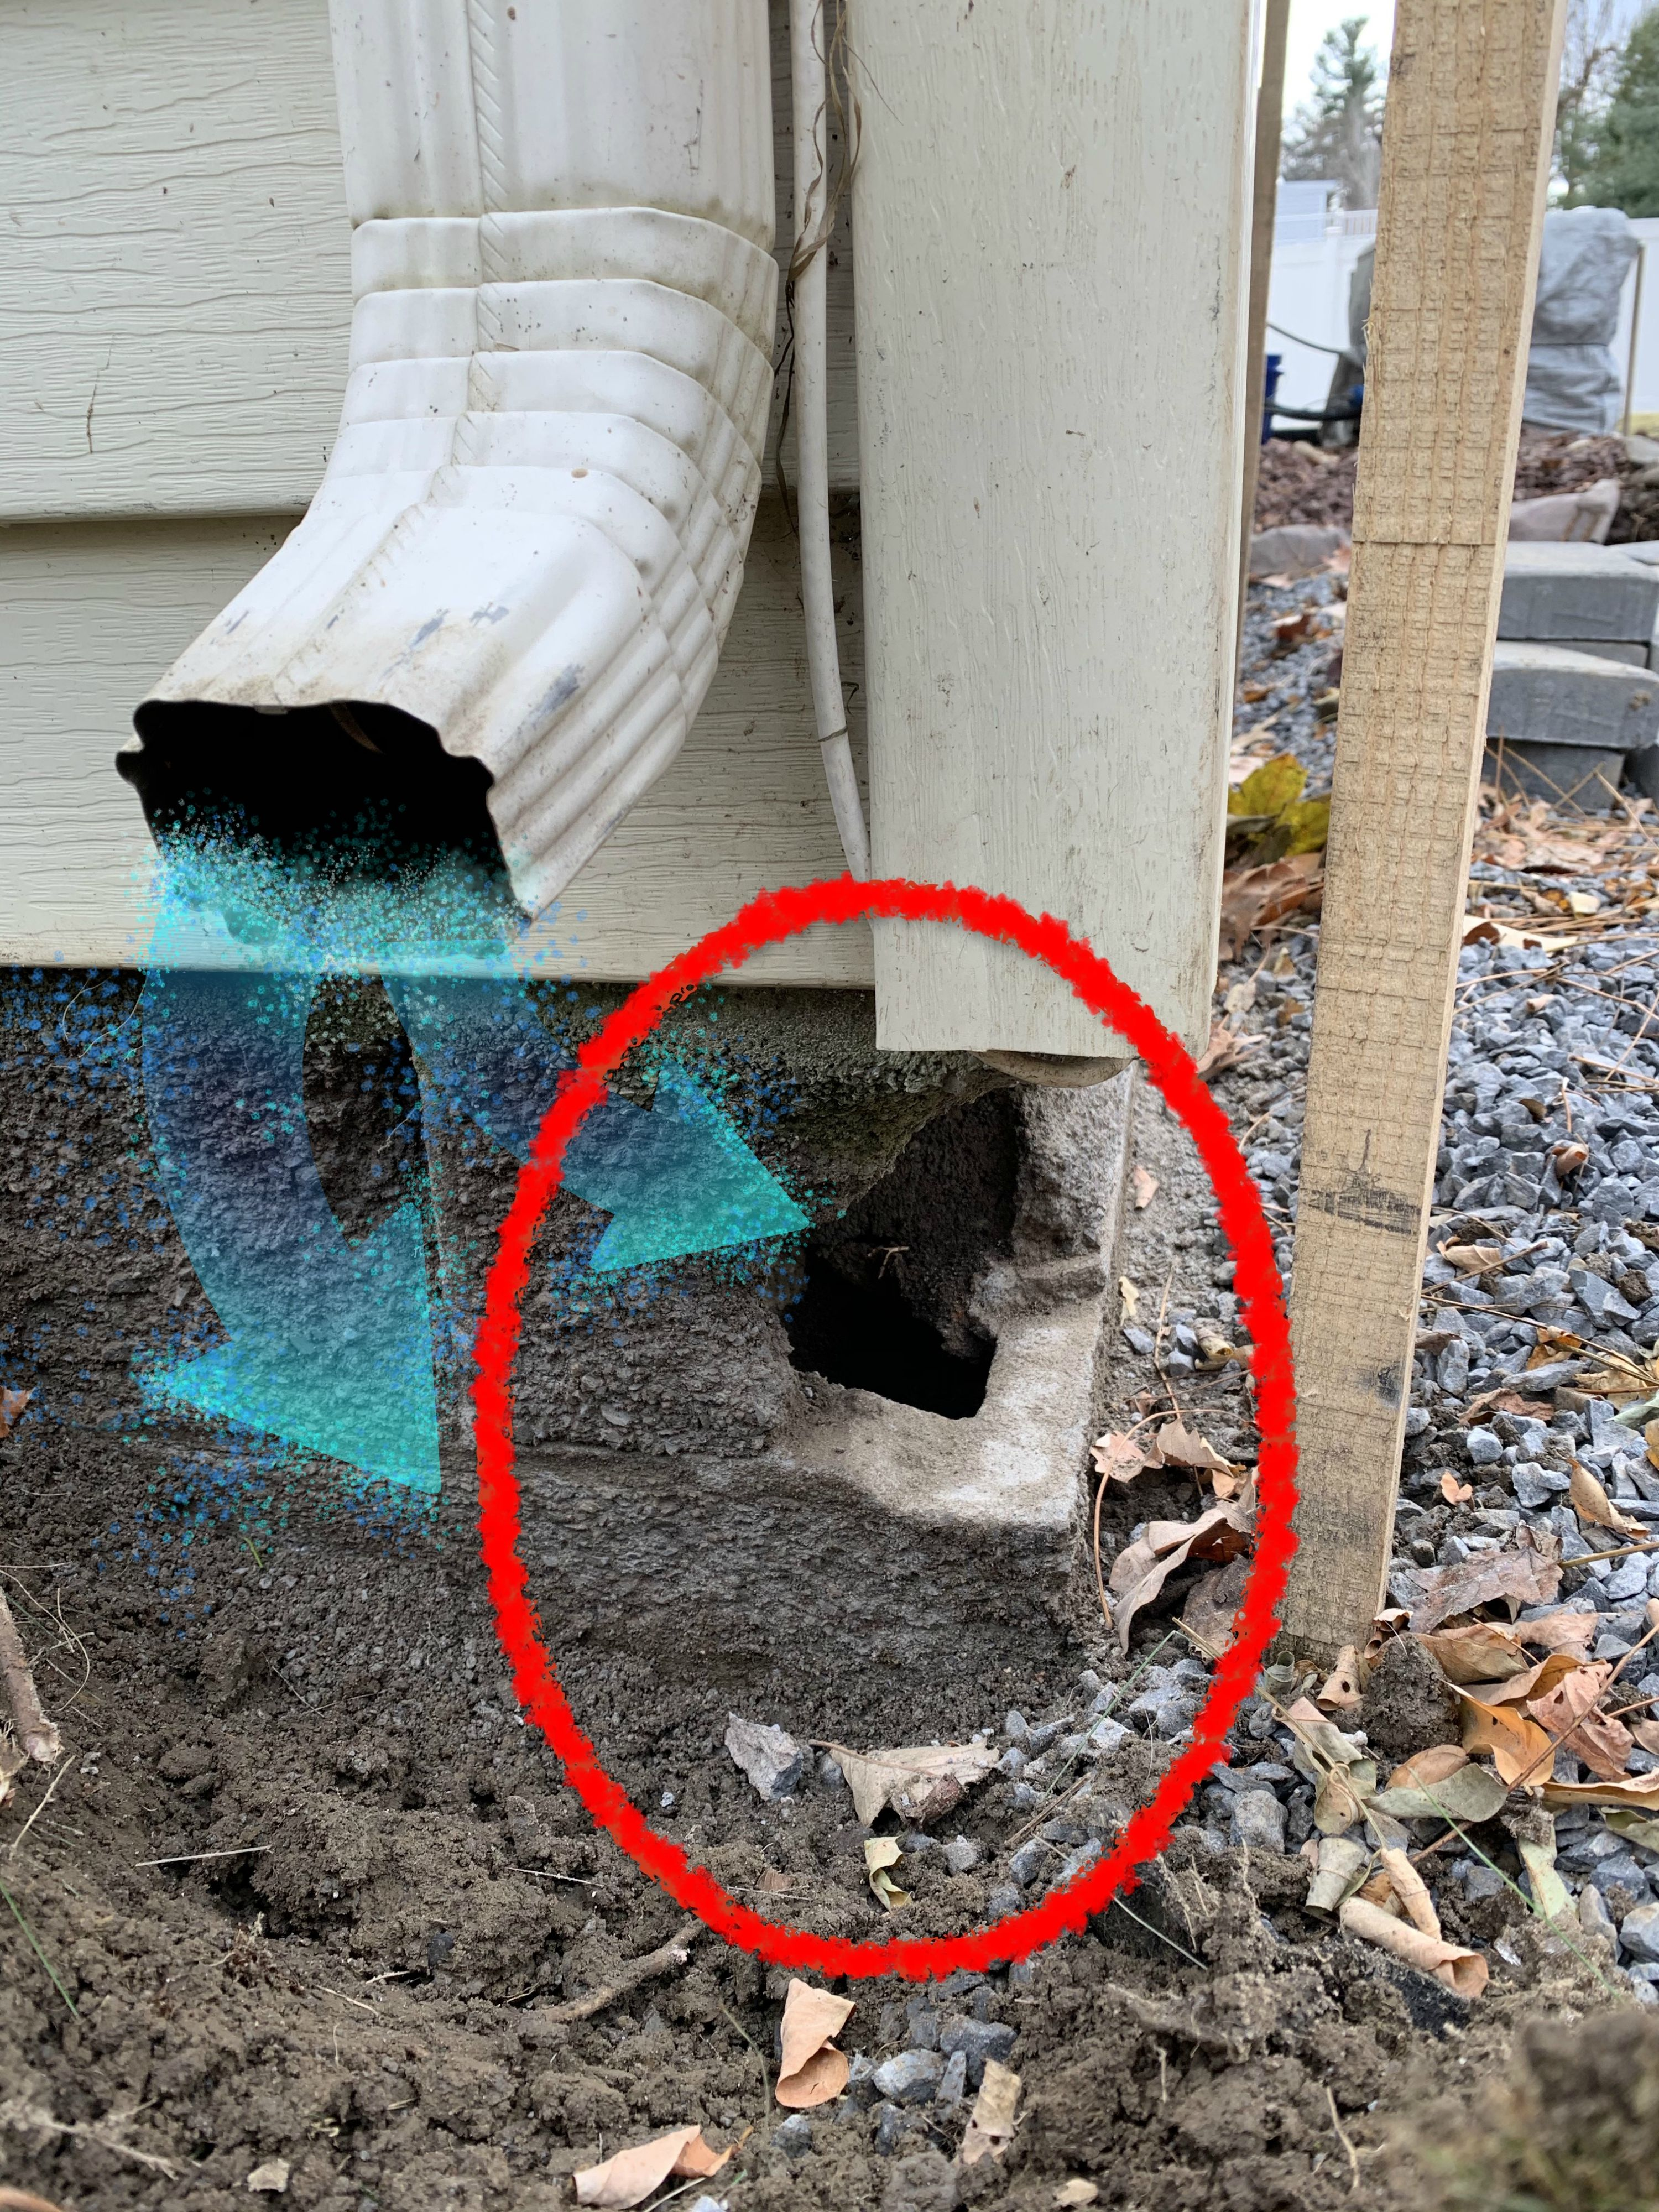 Prevent Foundation Damage Leaking And Water Issues With Grading And Drainage Fix Basement Leaks In 2020 Gutter Drainage Drainage Sump Pump Drainage